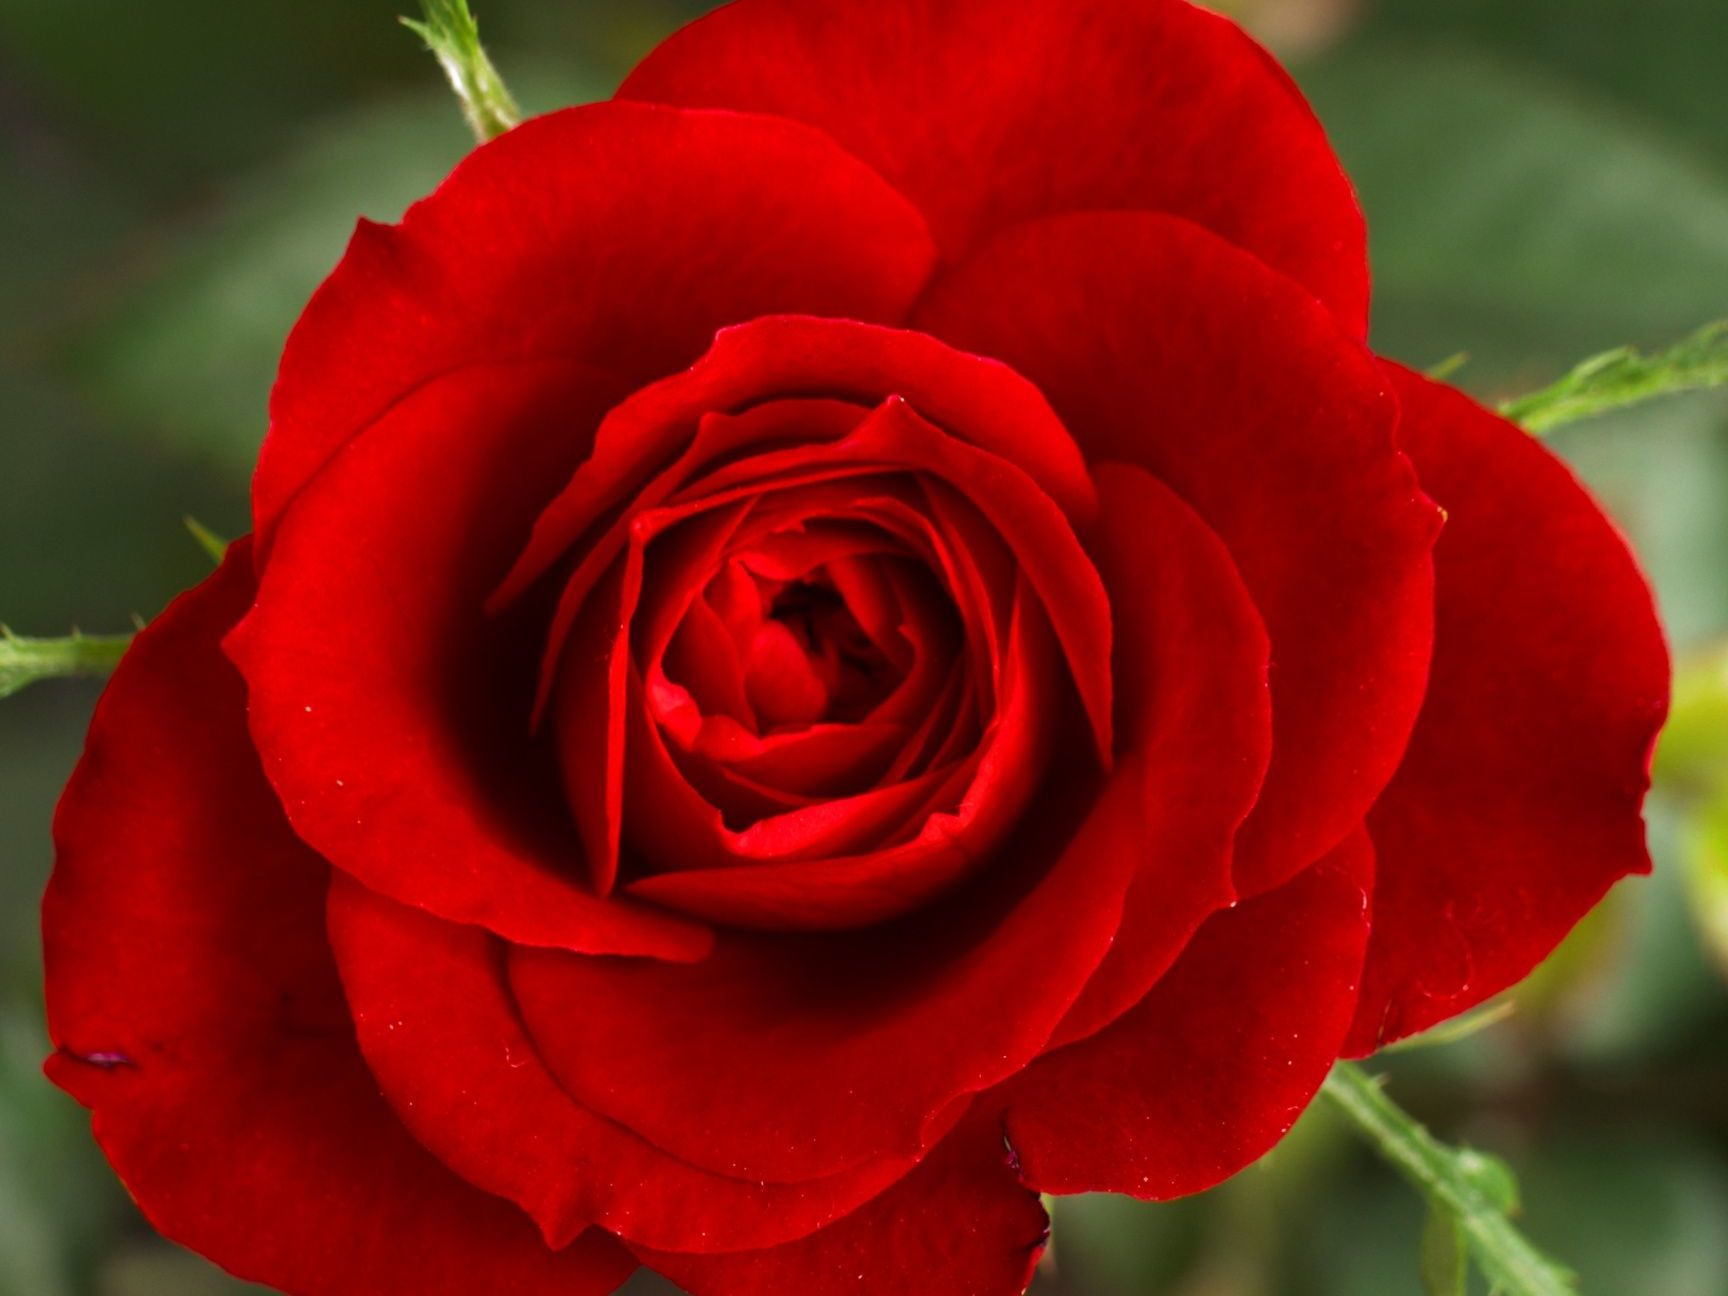 Red rose in bloom on create-your-own package menu